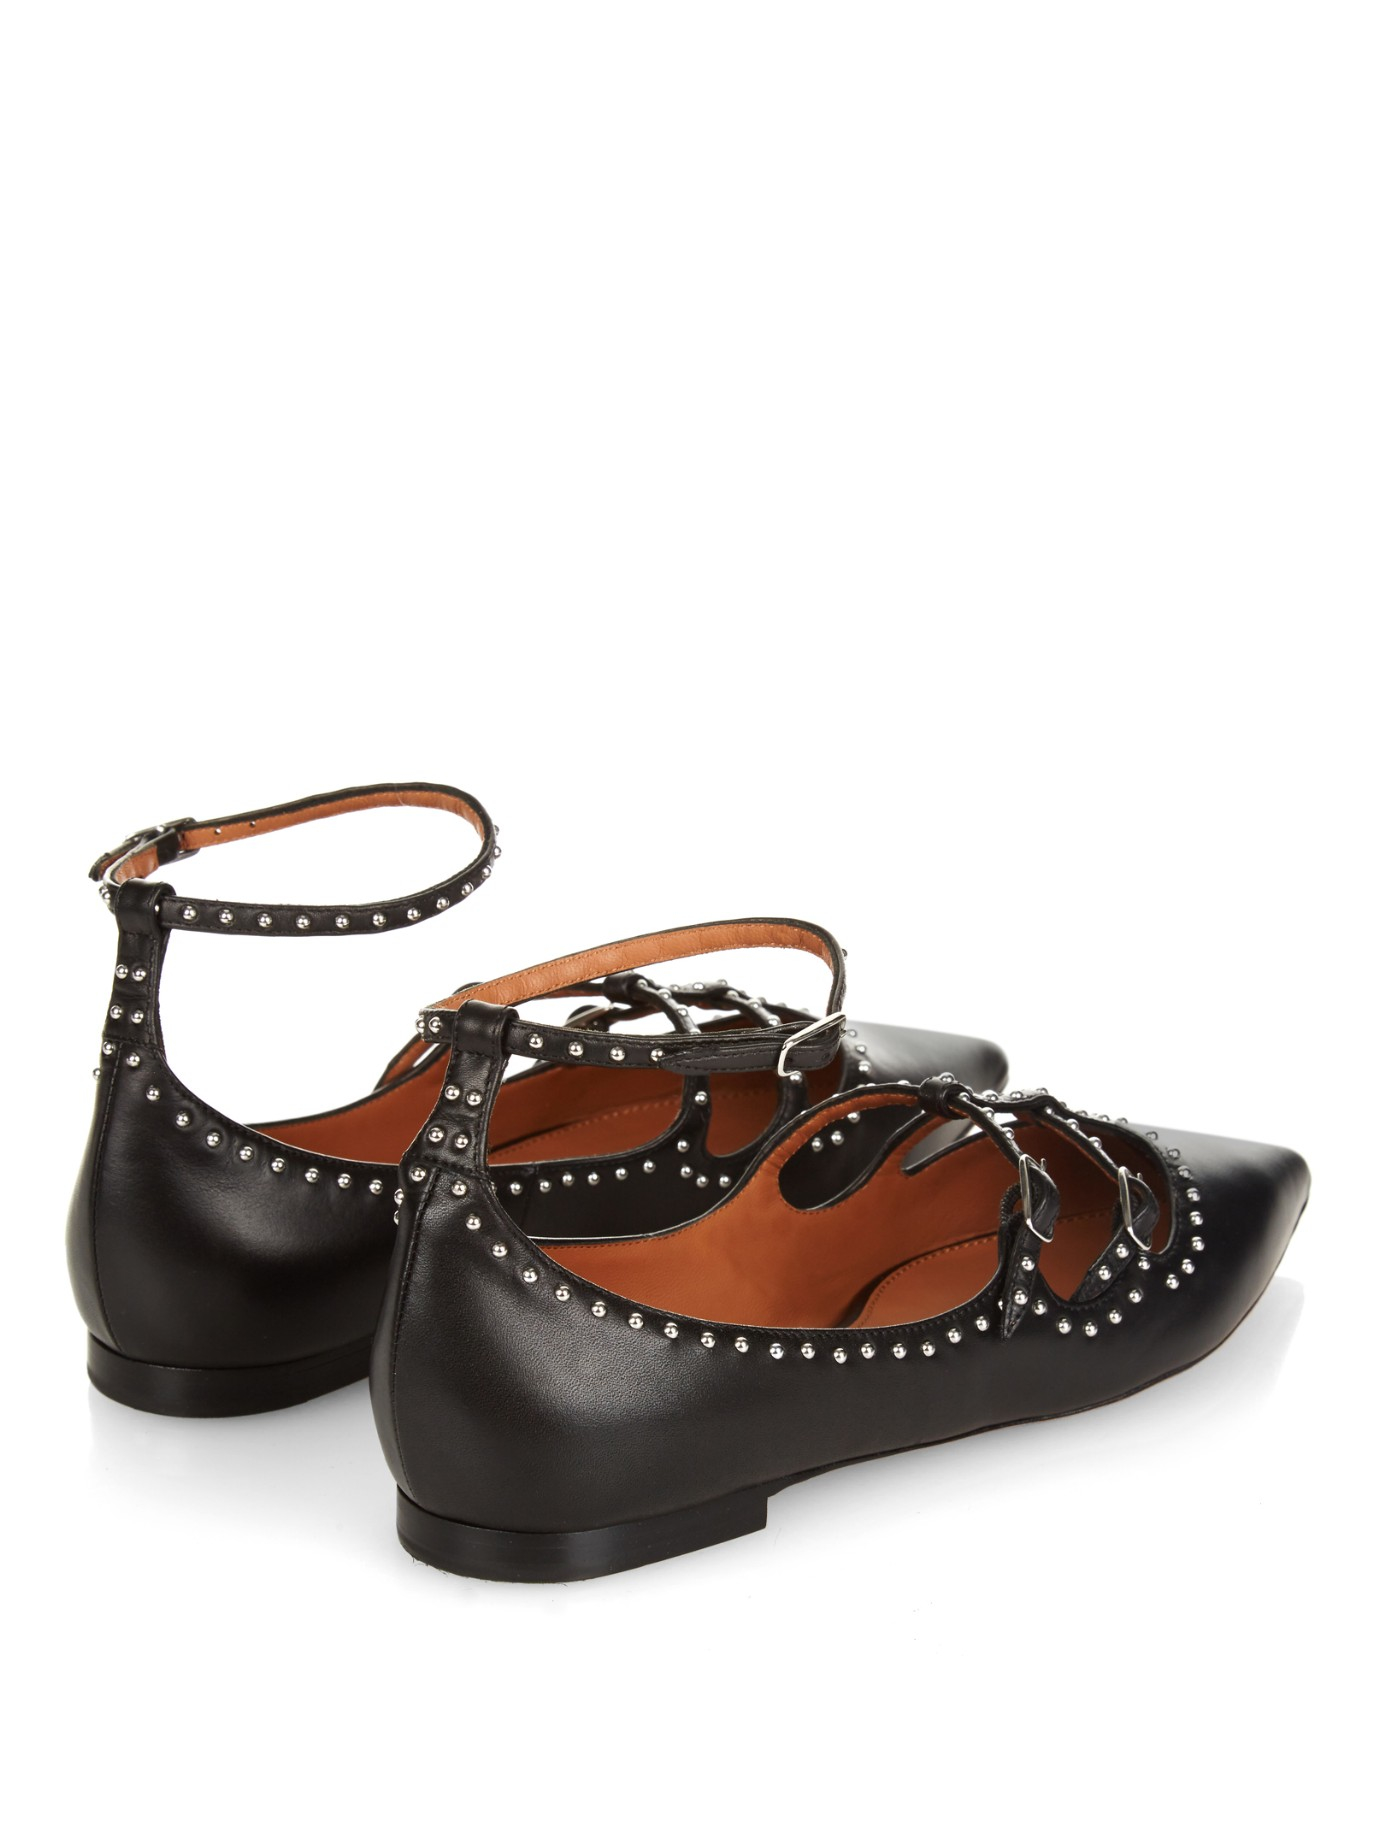 Givenchy Patent Leather Studded Flats clearance footaction eastbay comfortable cheap price k1m4r